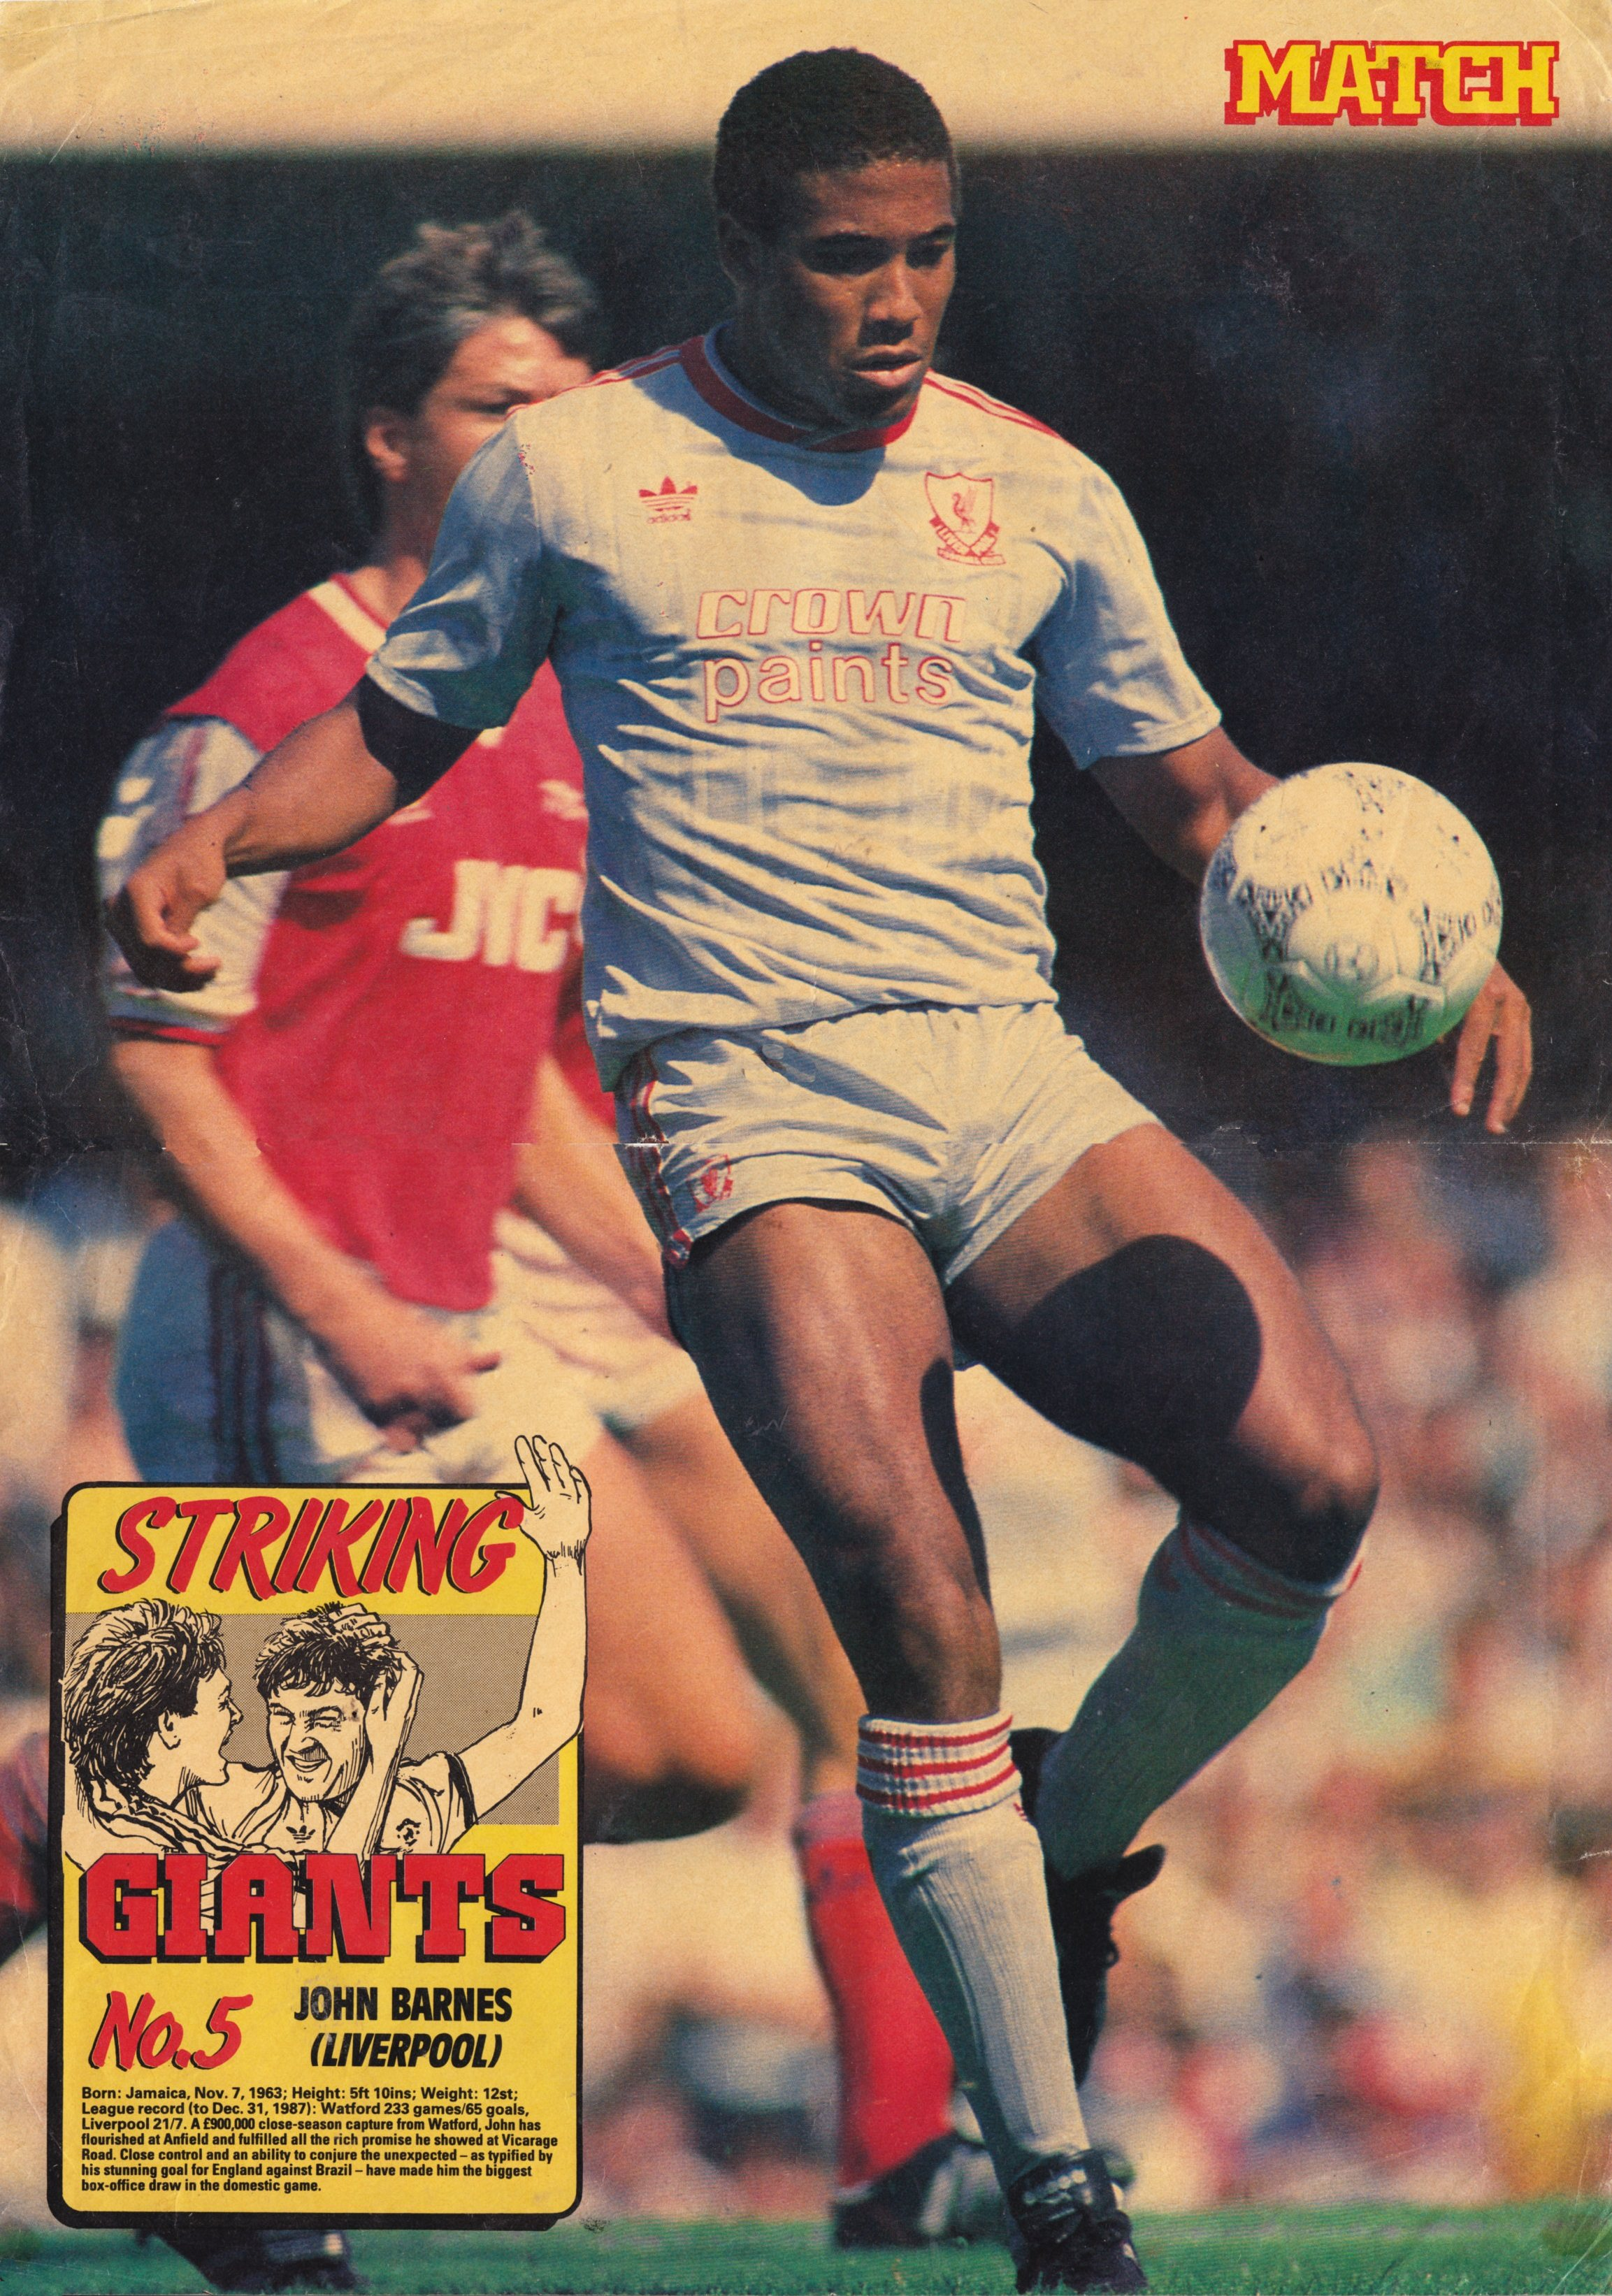 A big Match poster of John Barnes 1988